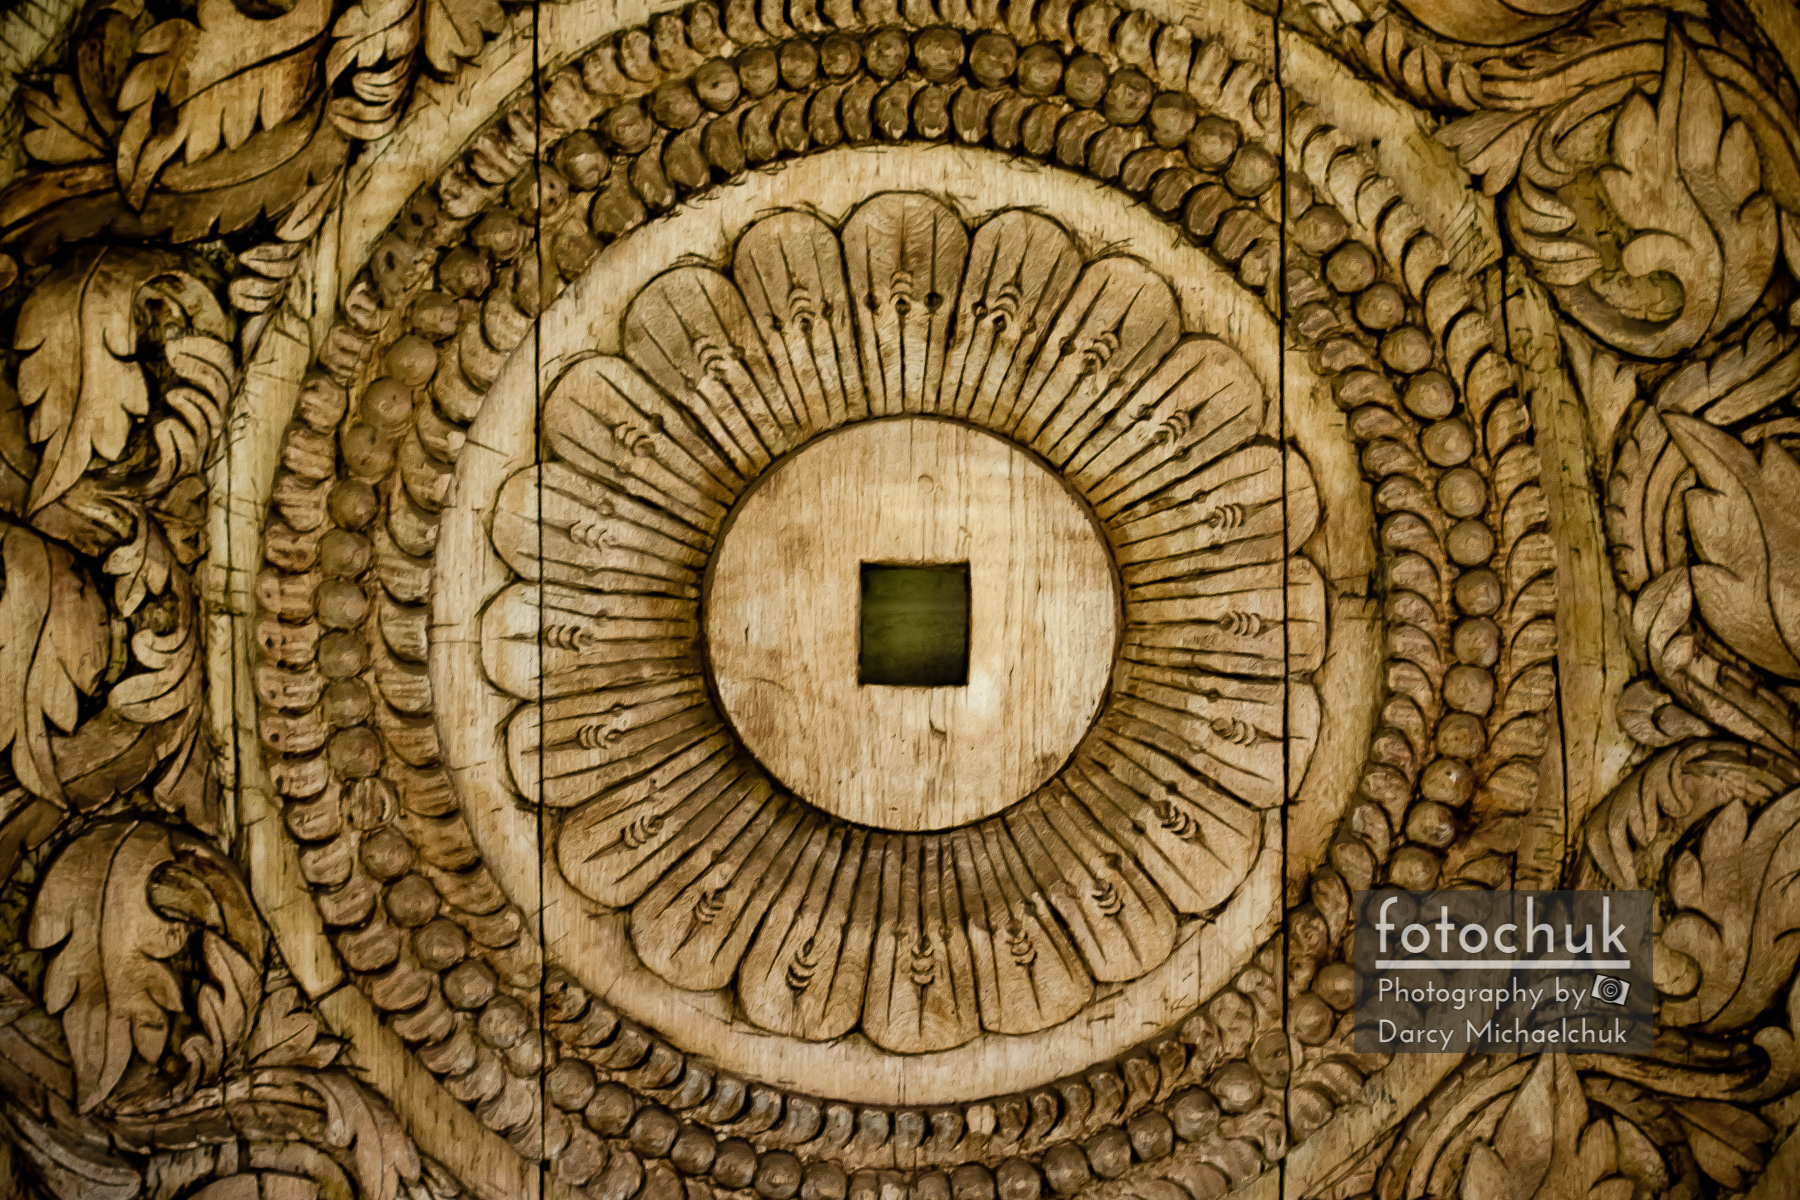 Patterns Carved in Wood